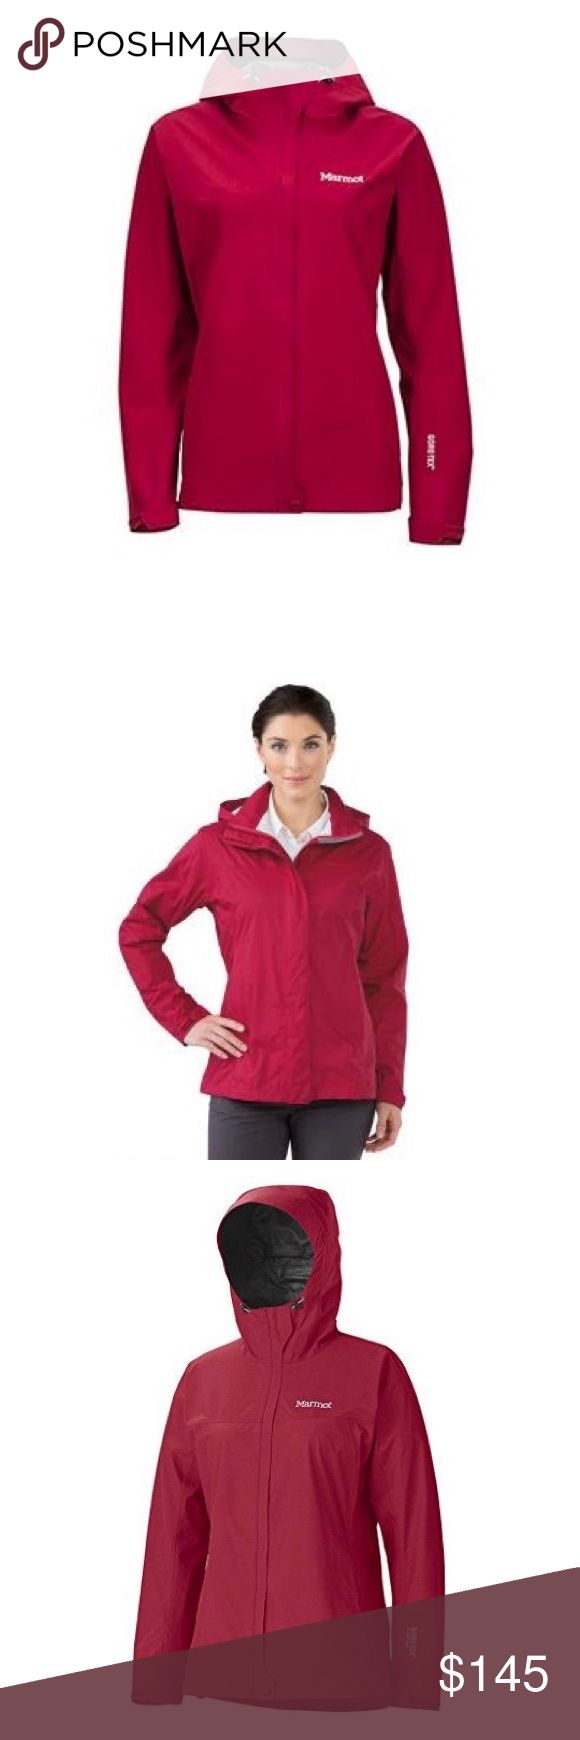 NWT Marmot Minimalist Jacket - Women's M Brand new with tags -- wrong size for me and I can't return it. Dark raspberry color is slightly fuschia (pictures make it look more bright red but actually is closest to first picture). Beautiful color, awesome jacket, never worn! Marmot Jackets & Coats